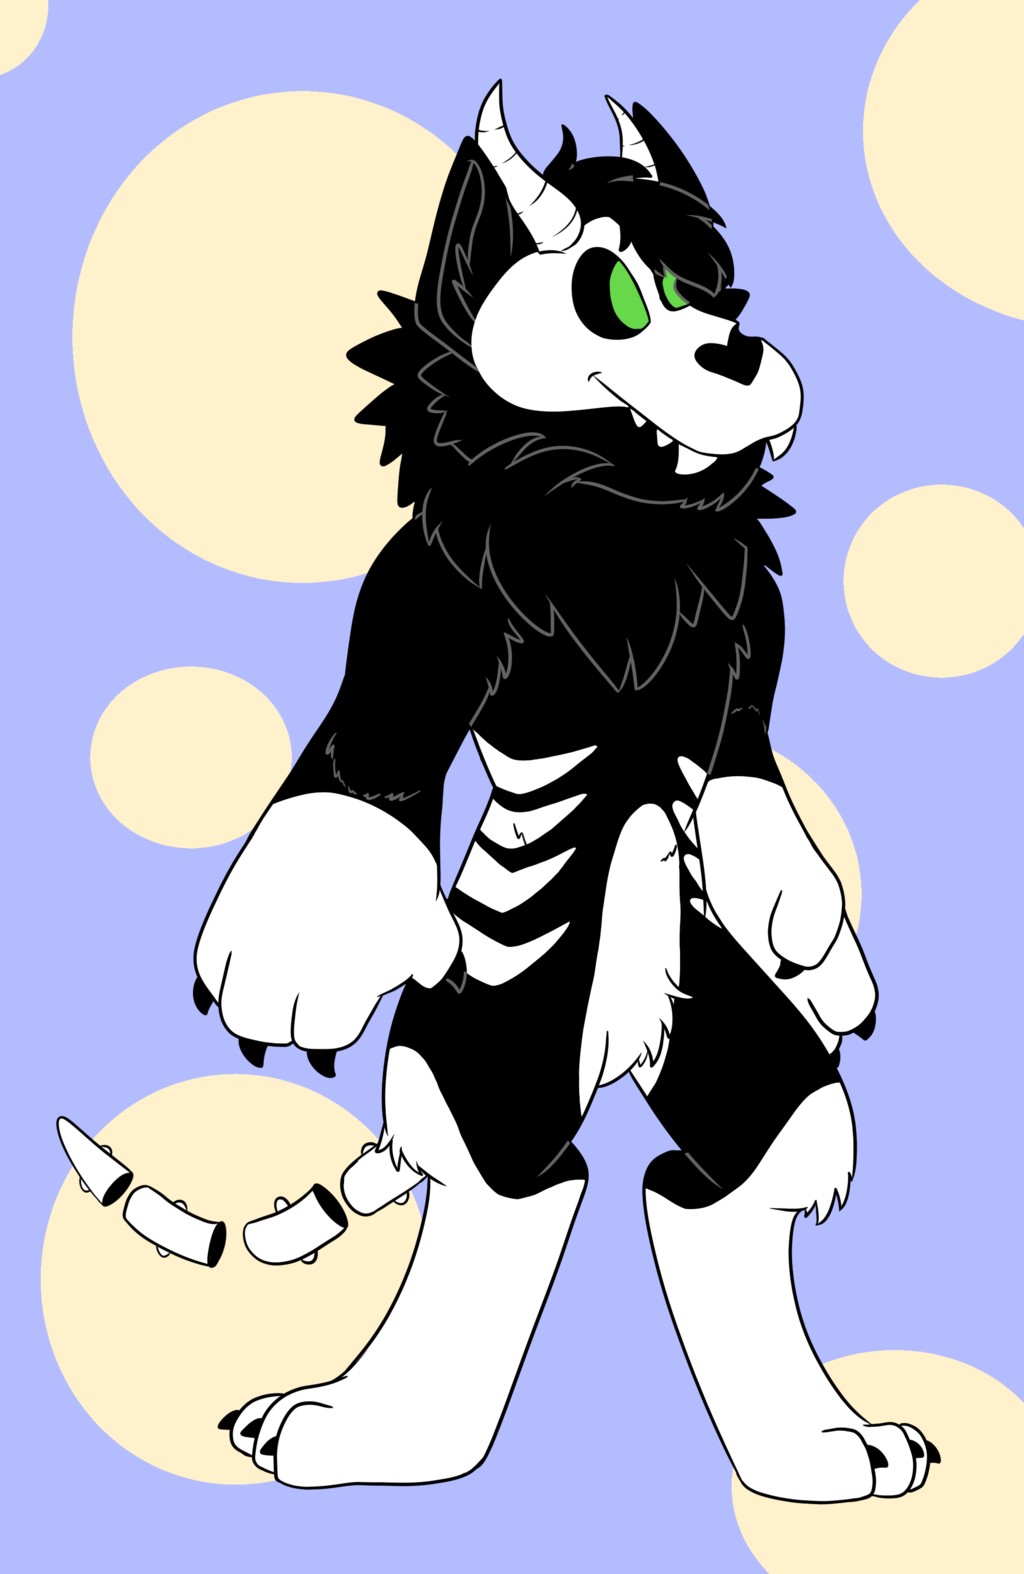 Most recent image: Scary Boy~ [GA]